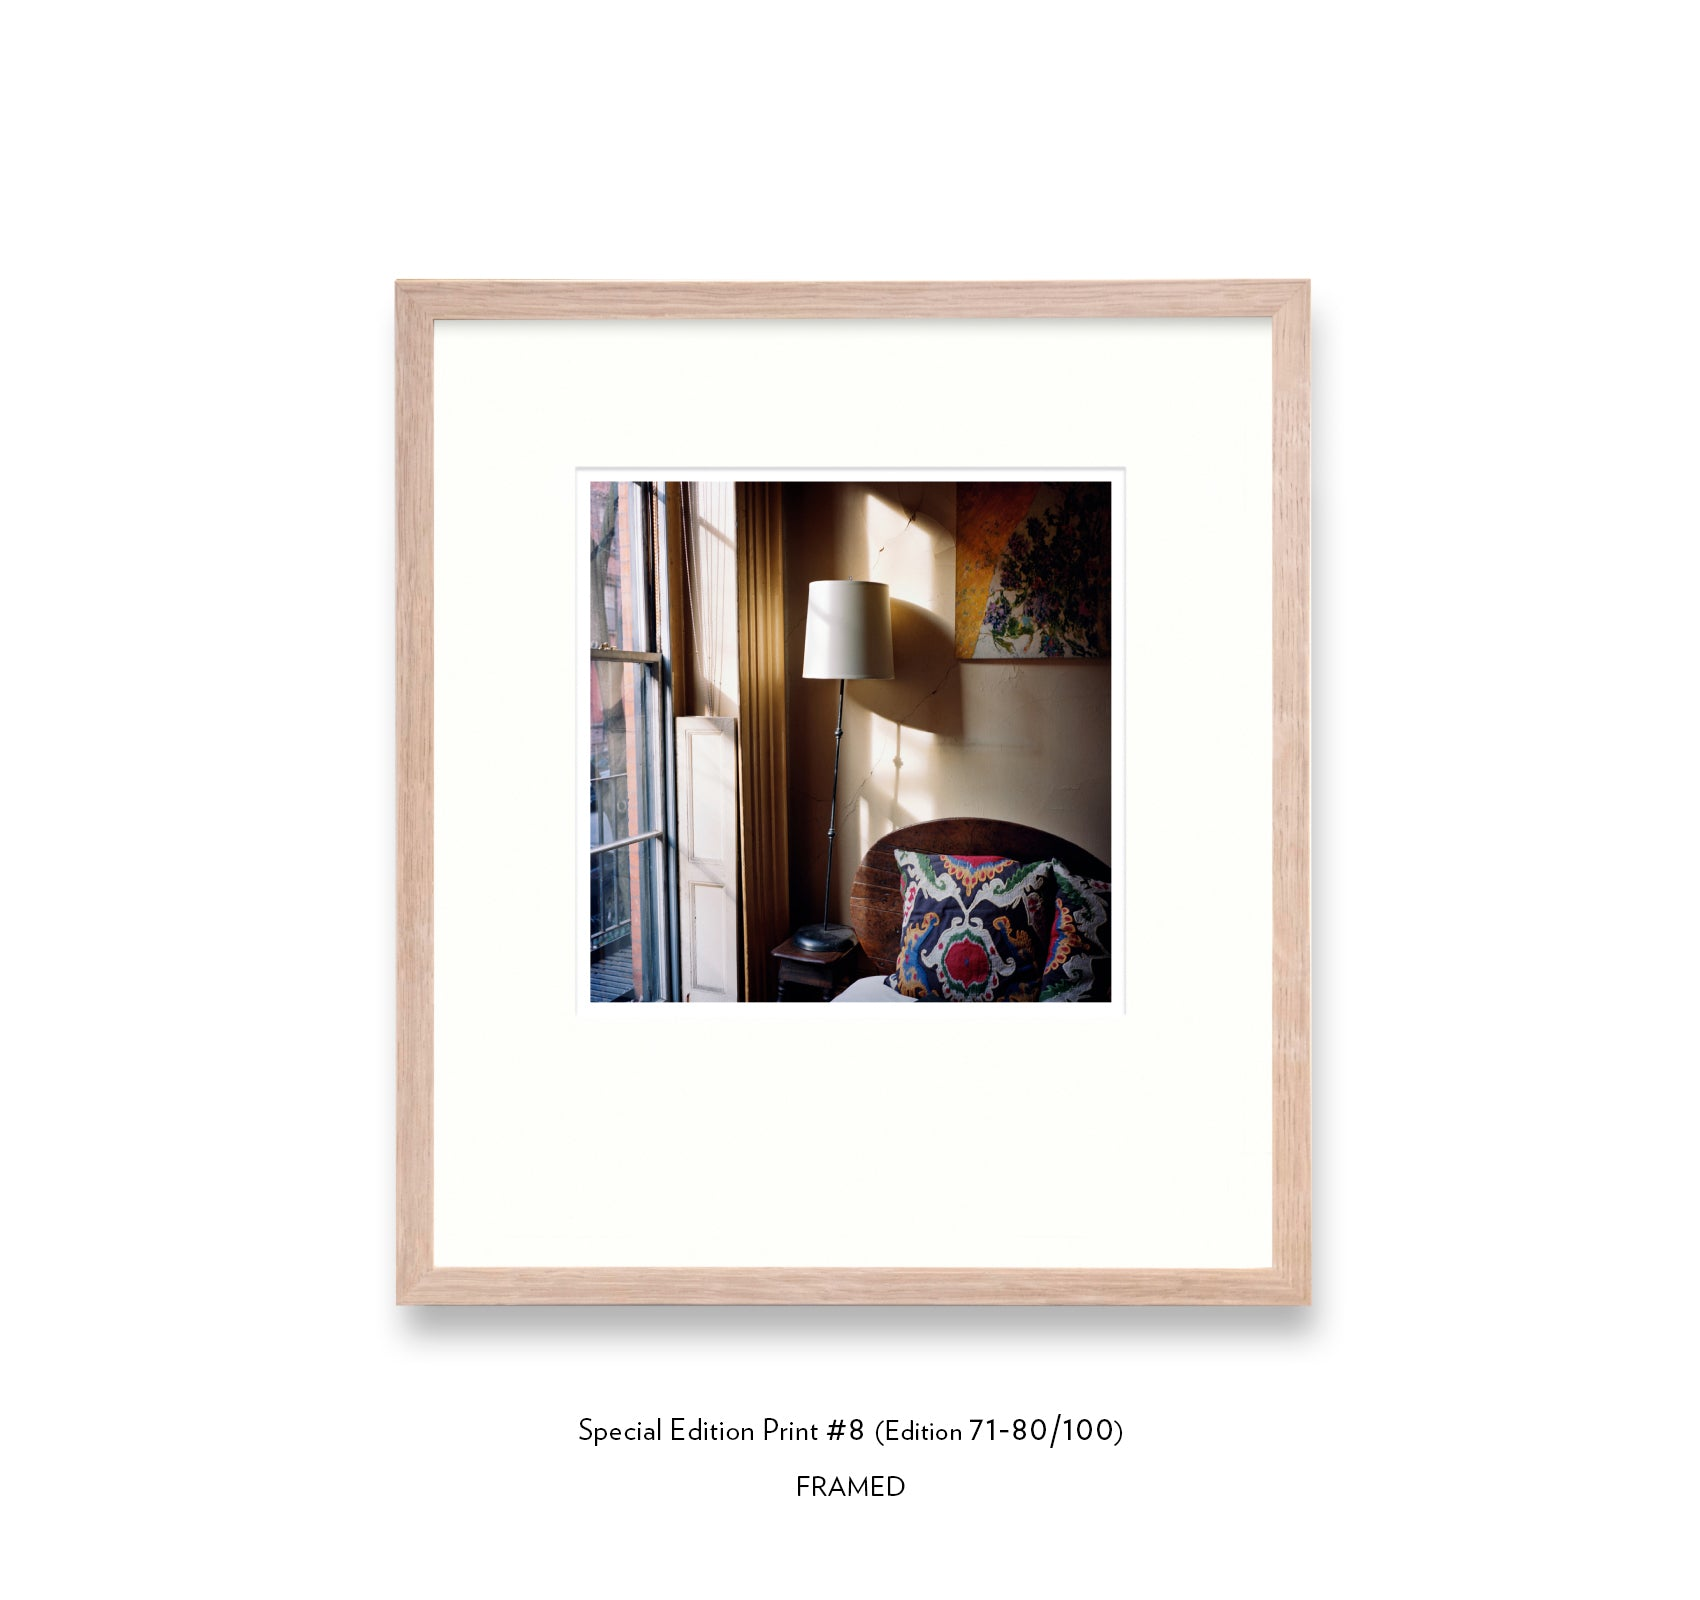 SAUL LEITER by François Halard [JAPANESE SPECIAL EDITION #8]